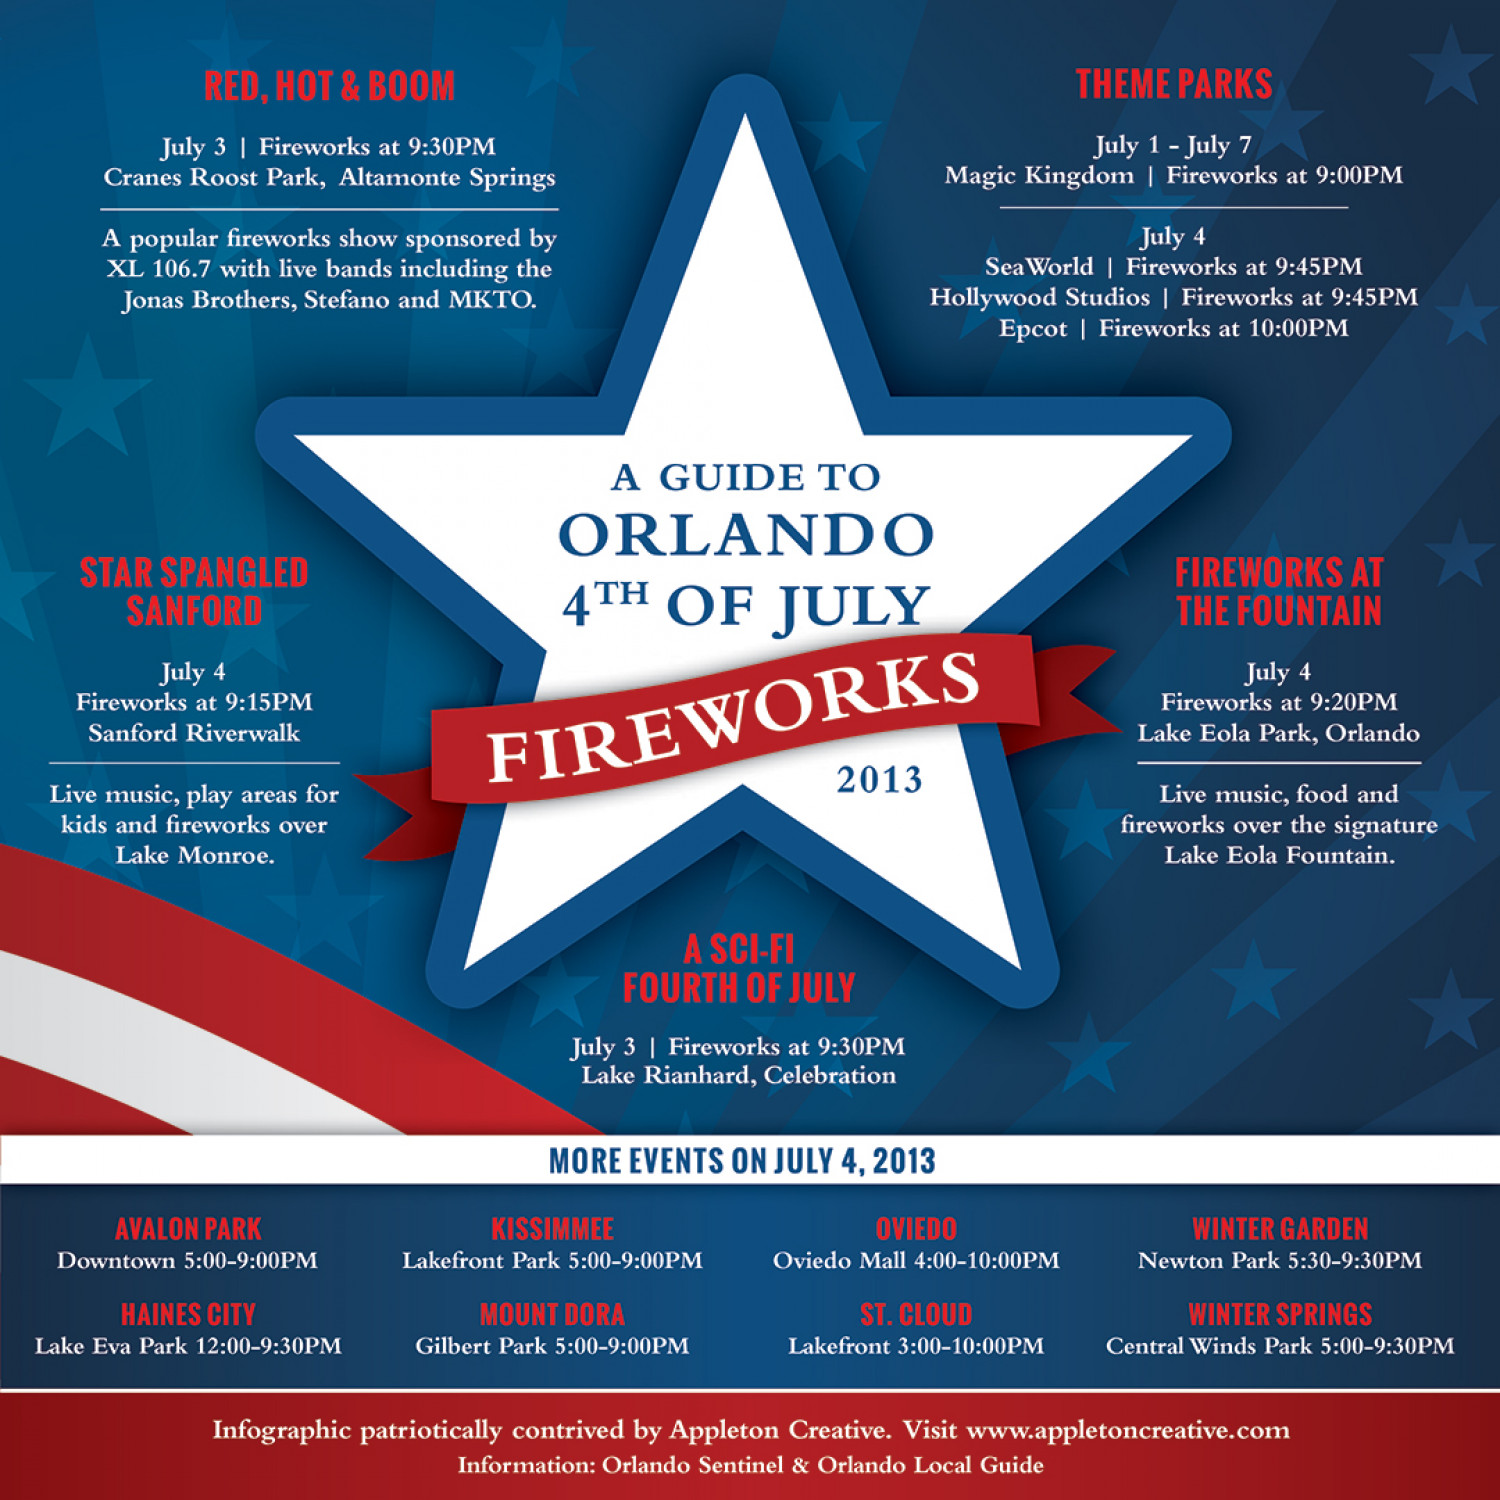 A Guide to Orlando 4th of July Fireworks 2013 Infographic